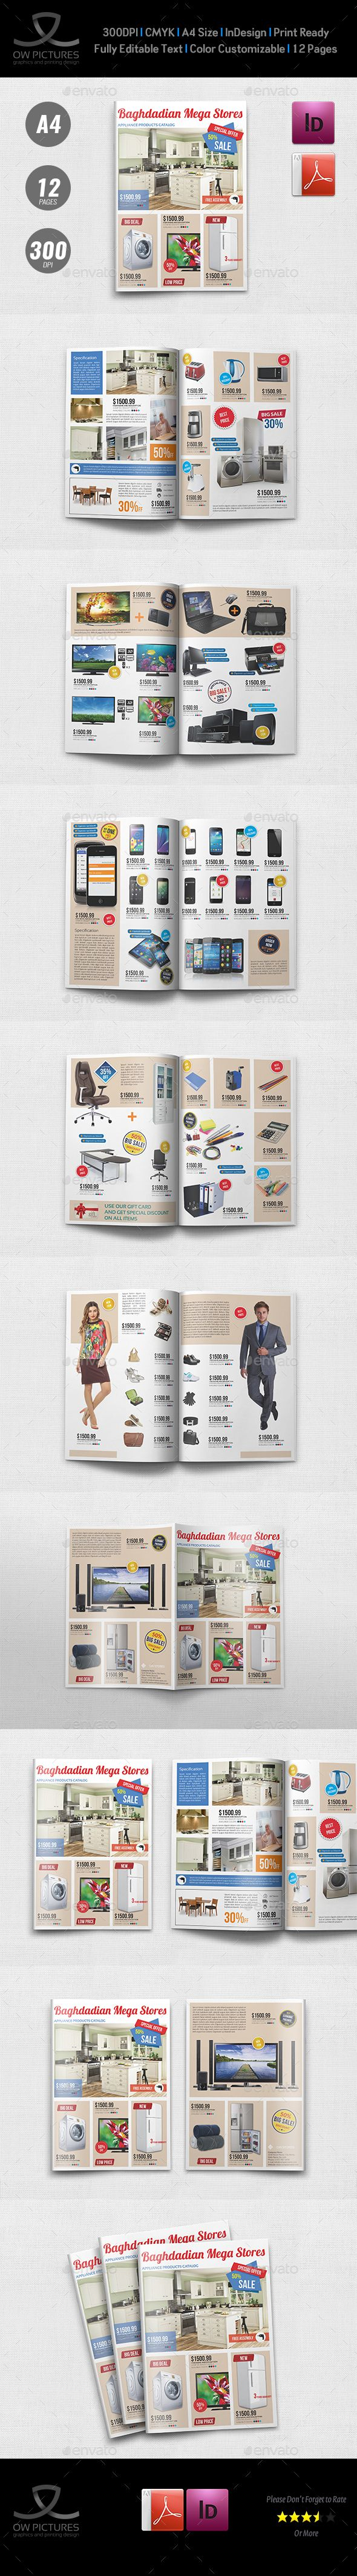 Great 10 Best Resume Designs Thick 100 Free Resume Builder And Download Flat 100 Template 18th Birthday Invitations Templates Old 2 Binder Spine Template Fresh2 Weeks Notice Template 25  Best Ideas About Product Catalog Template On Pinterest ..